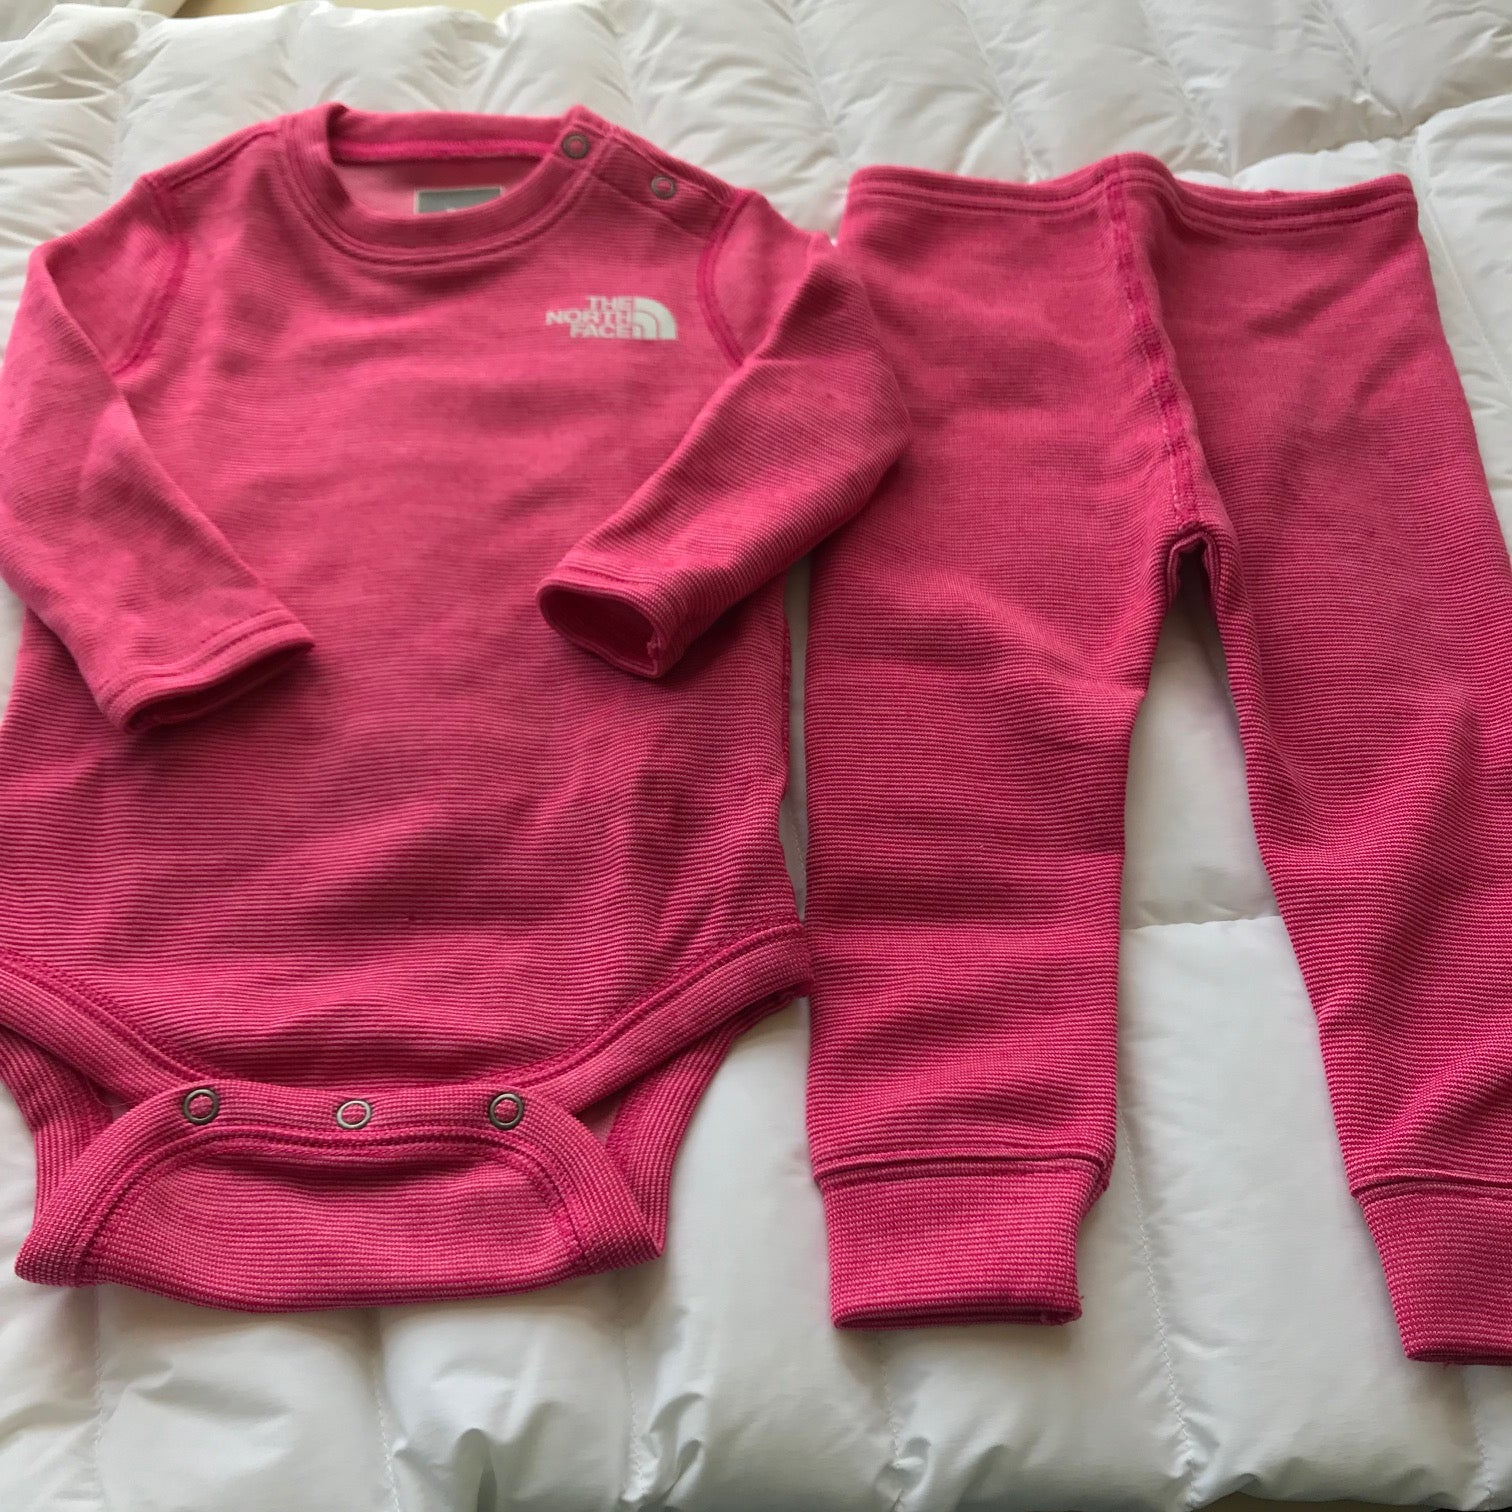 3bb95f735 Infants' The North Face | Baselayer Snapsuit Set | Pink